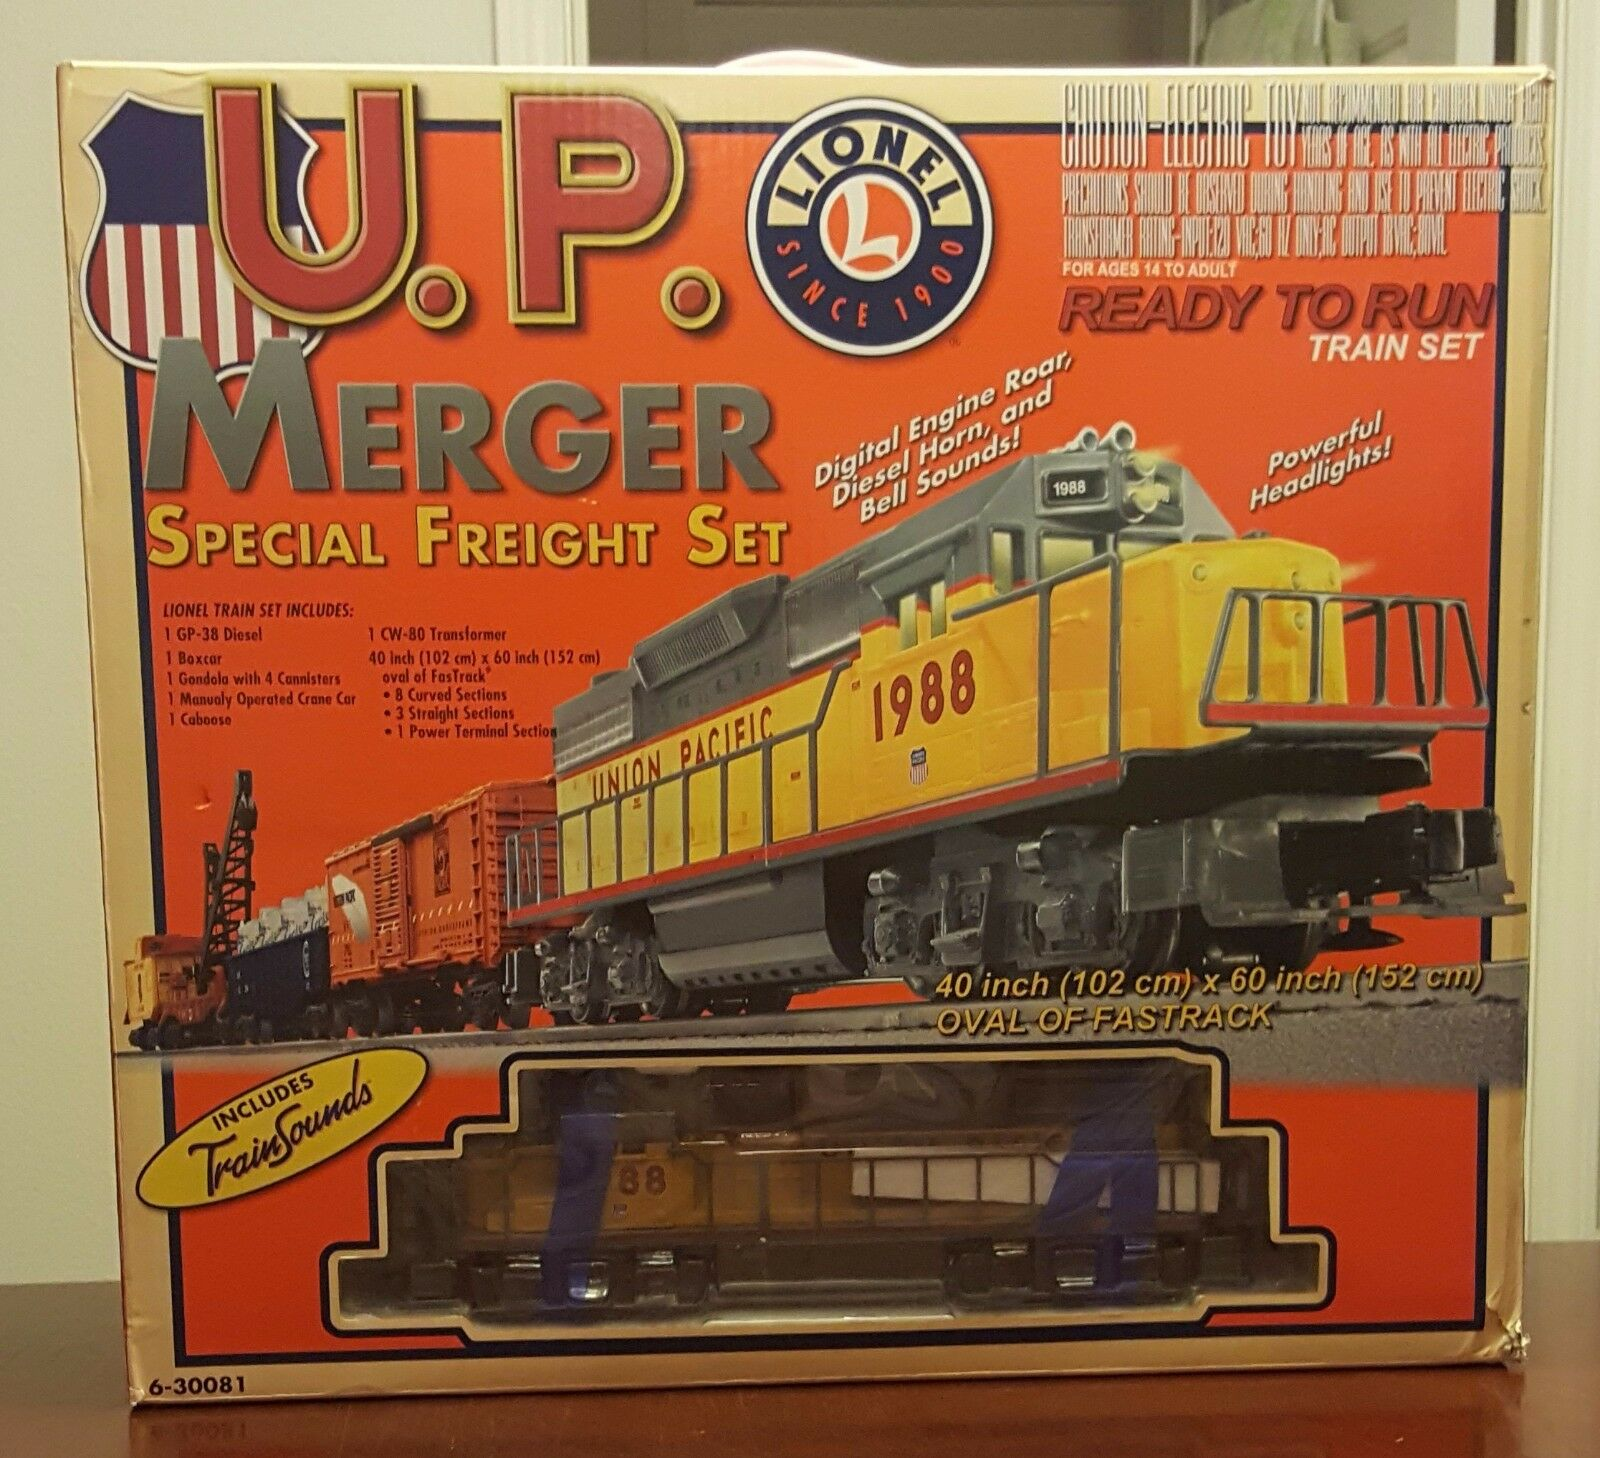 Lionel 6-30081 U.P. Merger Special Freight set - In Shipping Box